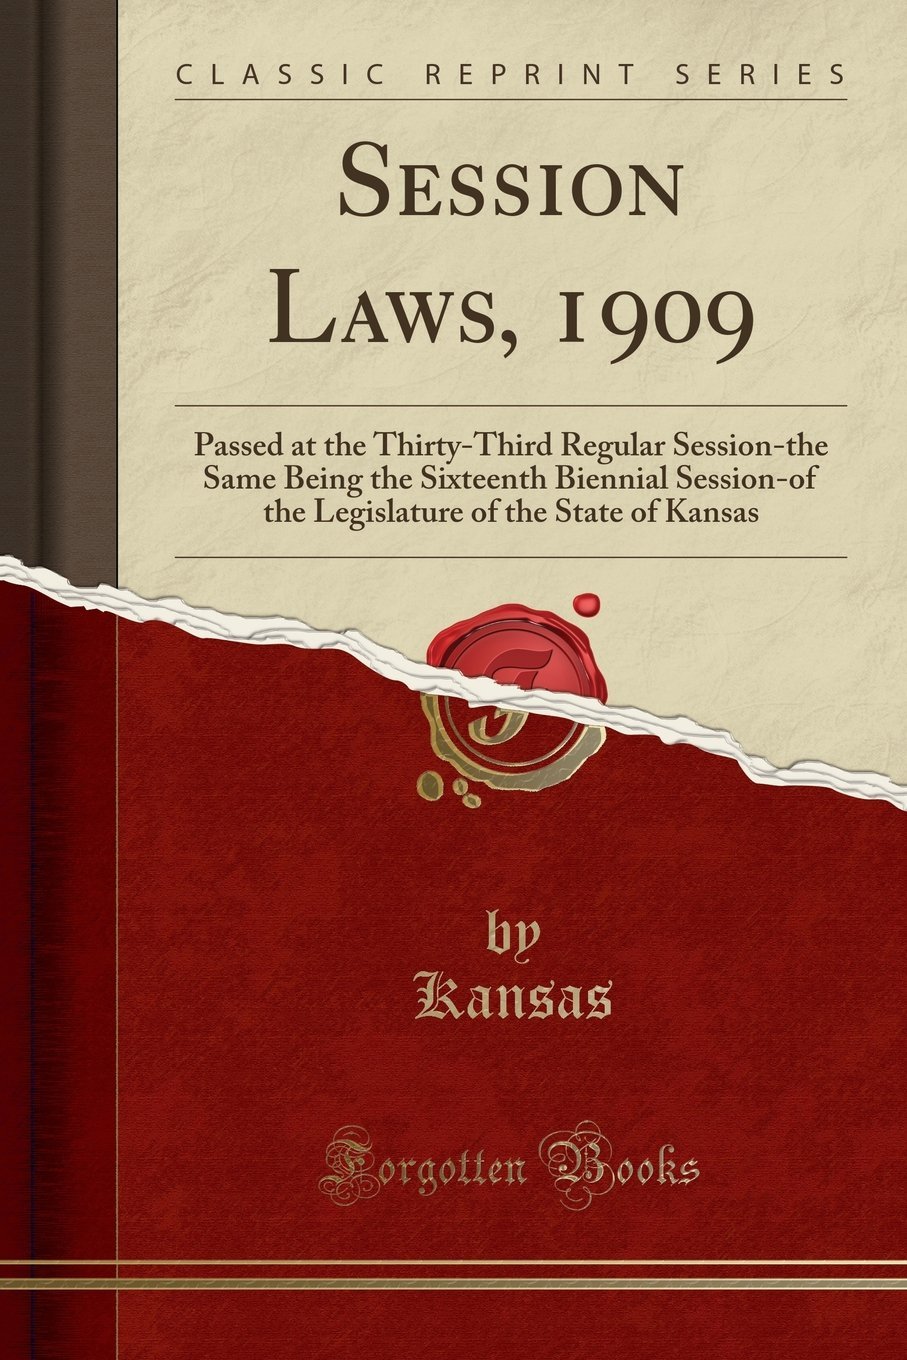 Read Online Session Laws, 1909: Passed at the Thirty-Third Regular Session-the Same Being the Sixteenth Biennial Session-of the Legislature of the State of Kansas (Classic Reprint) ebook